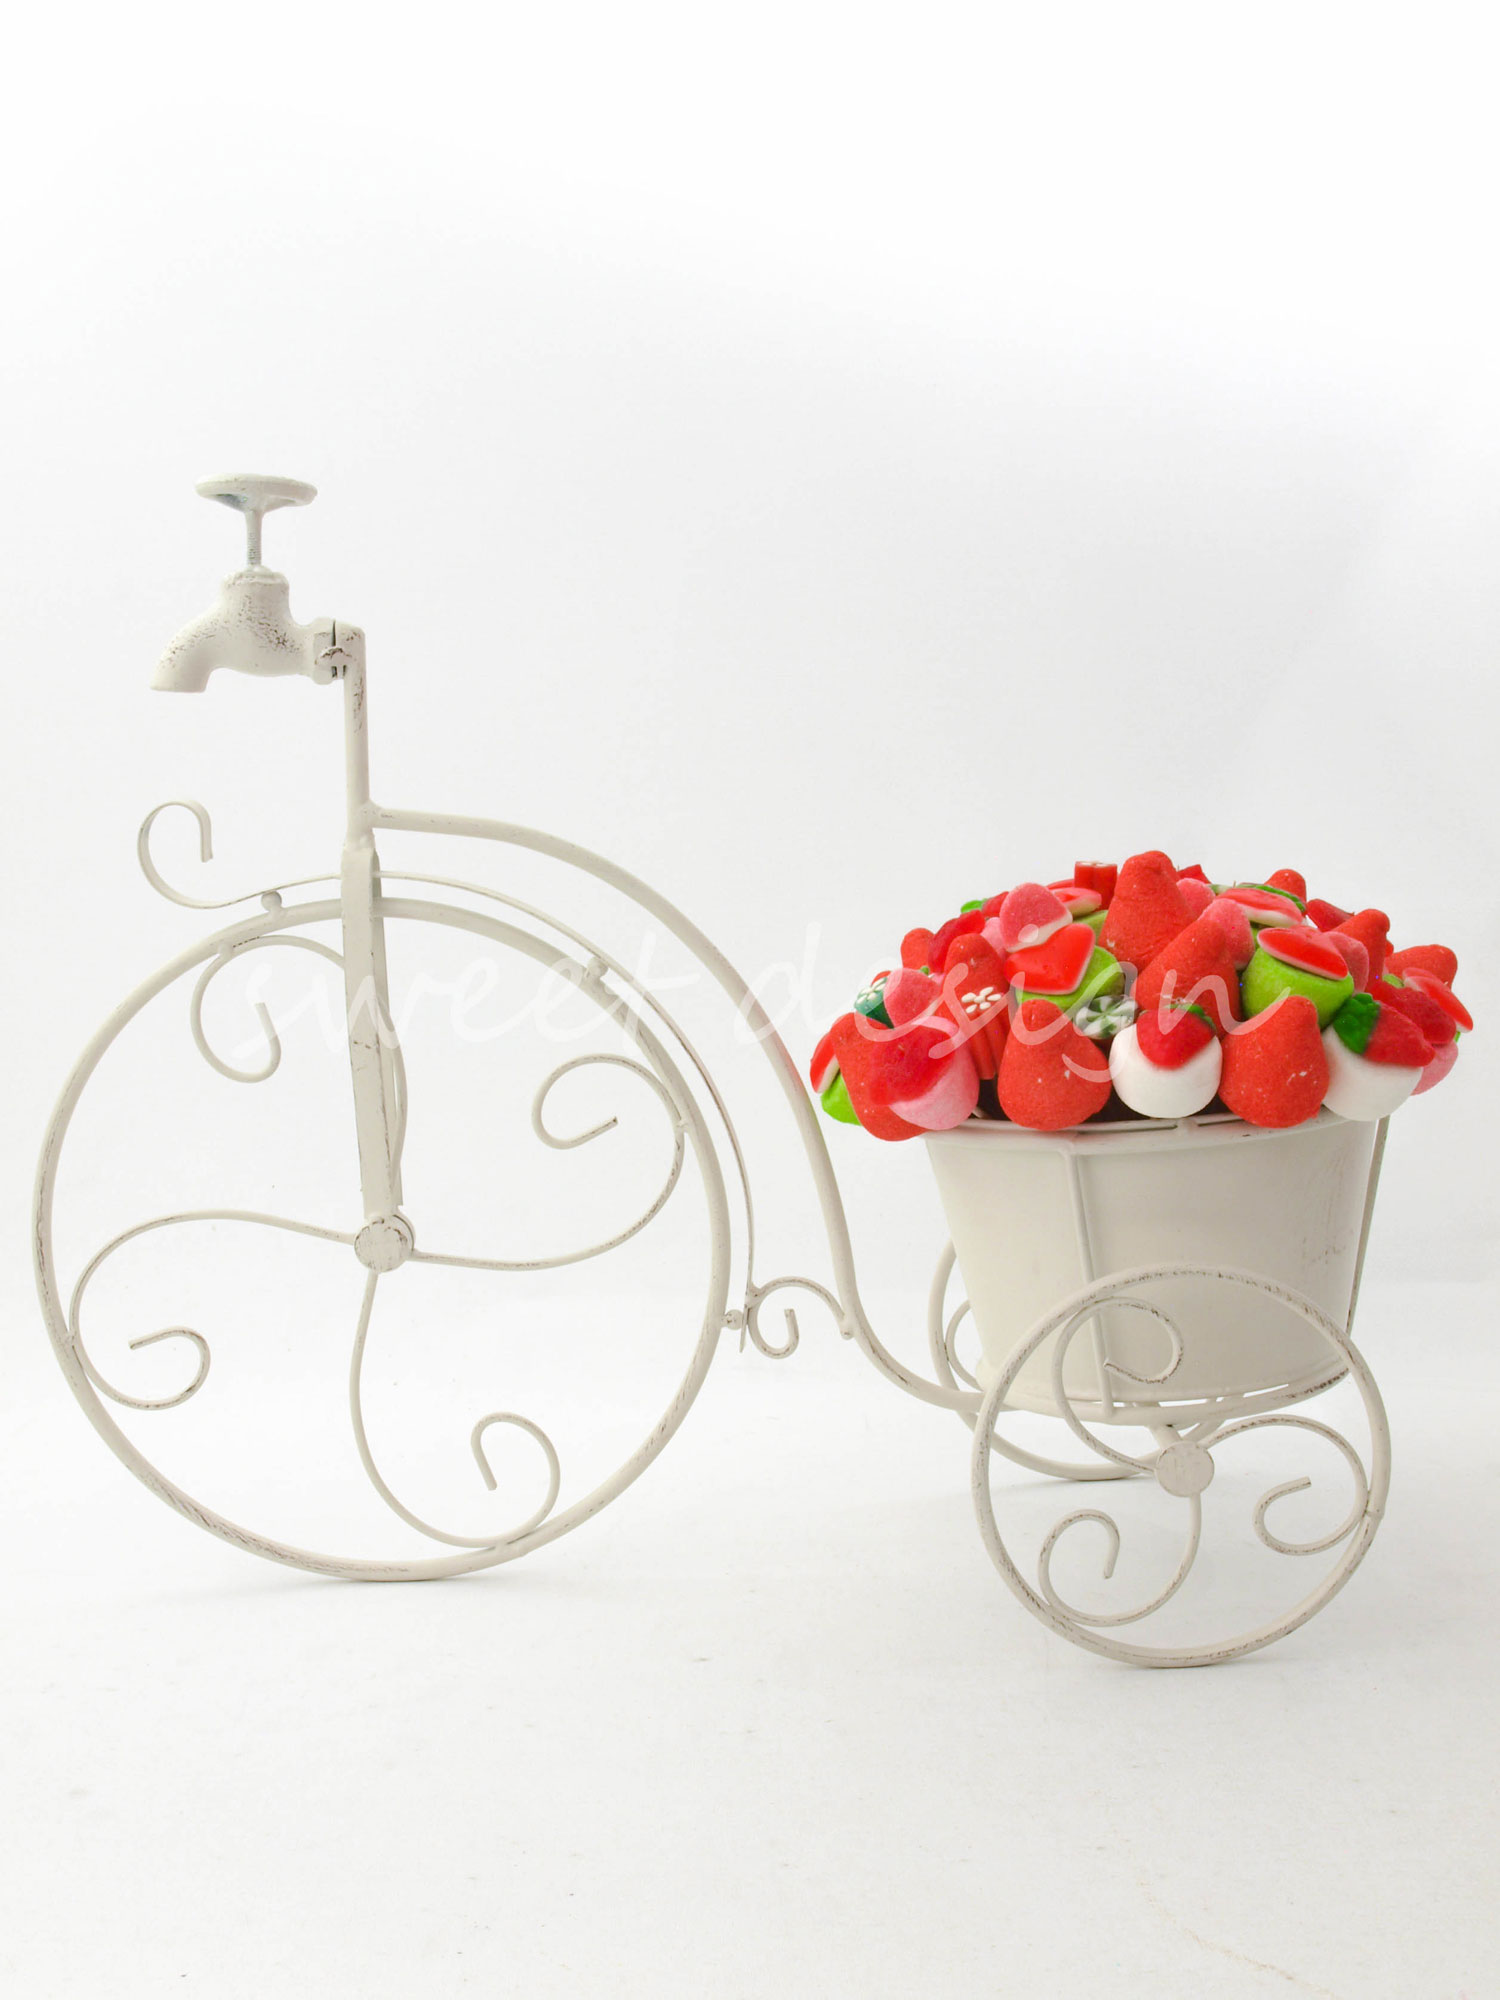 Bici bouquet en rojo verde blanco sweet design for Centros de mesa con chuches